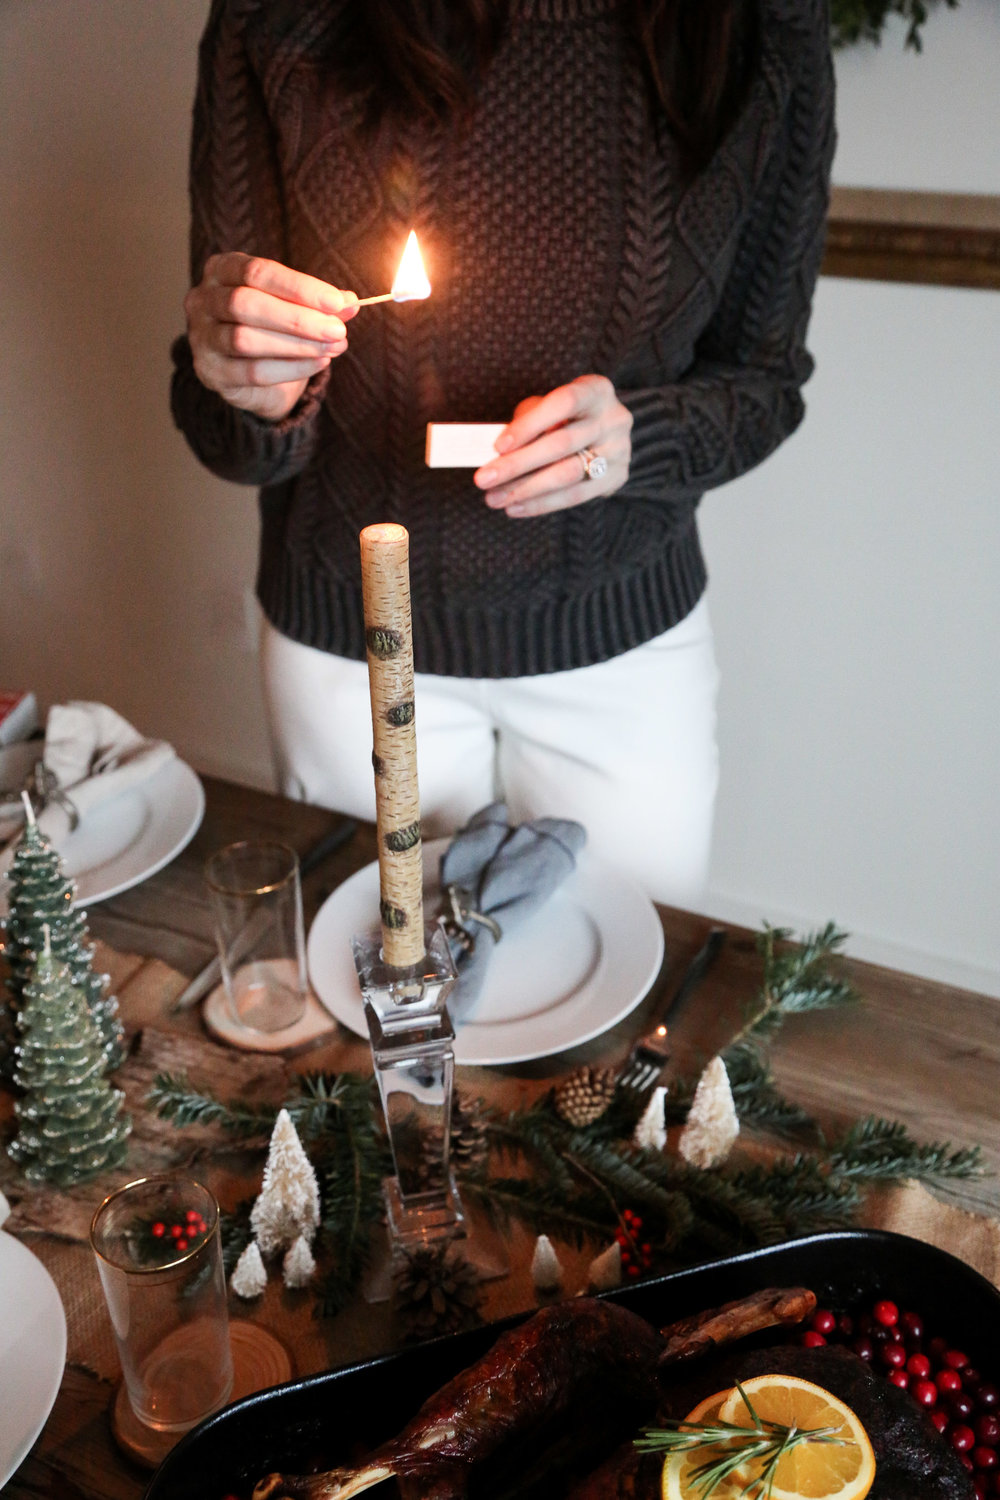 How-to-create-a-rustic-cozy-winter-woods-tablescape-for-the-holidays12.jpg